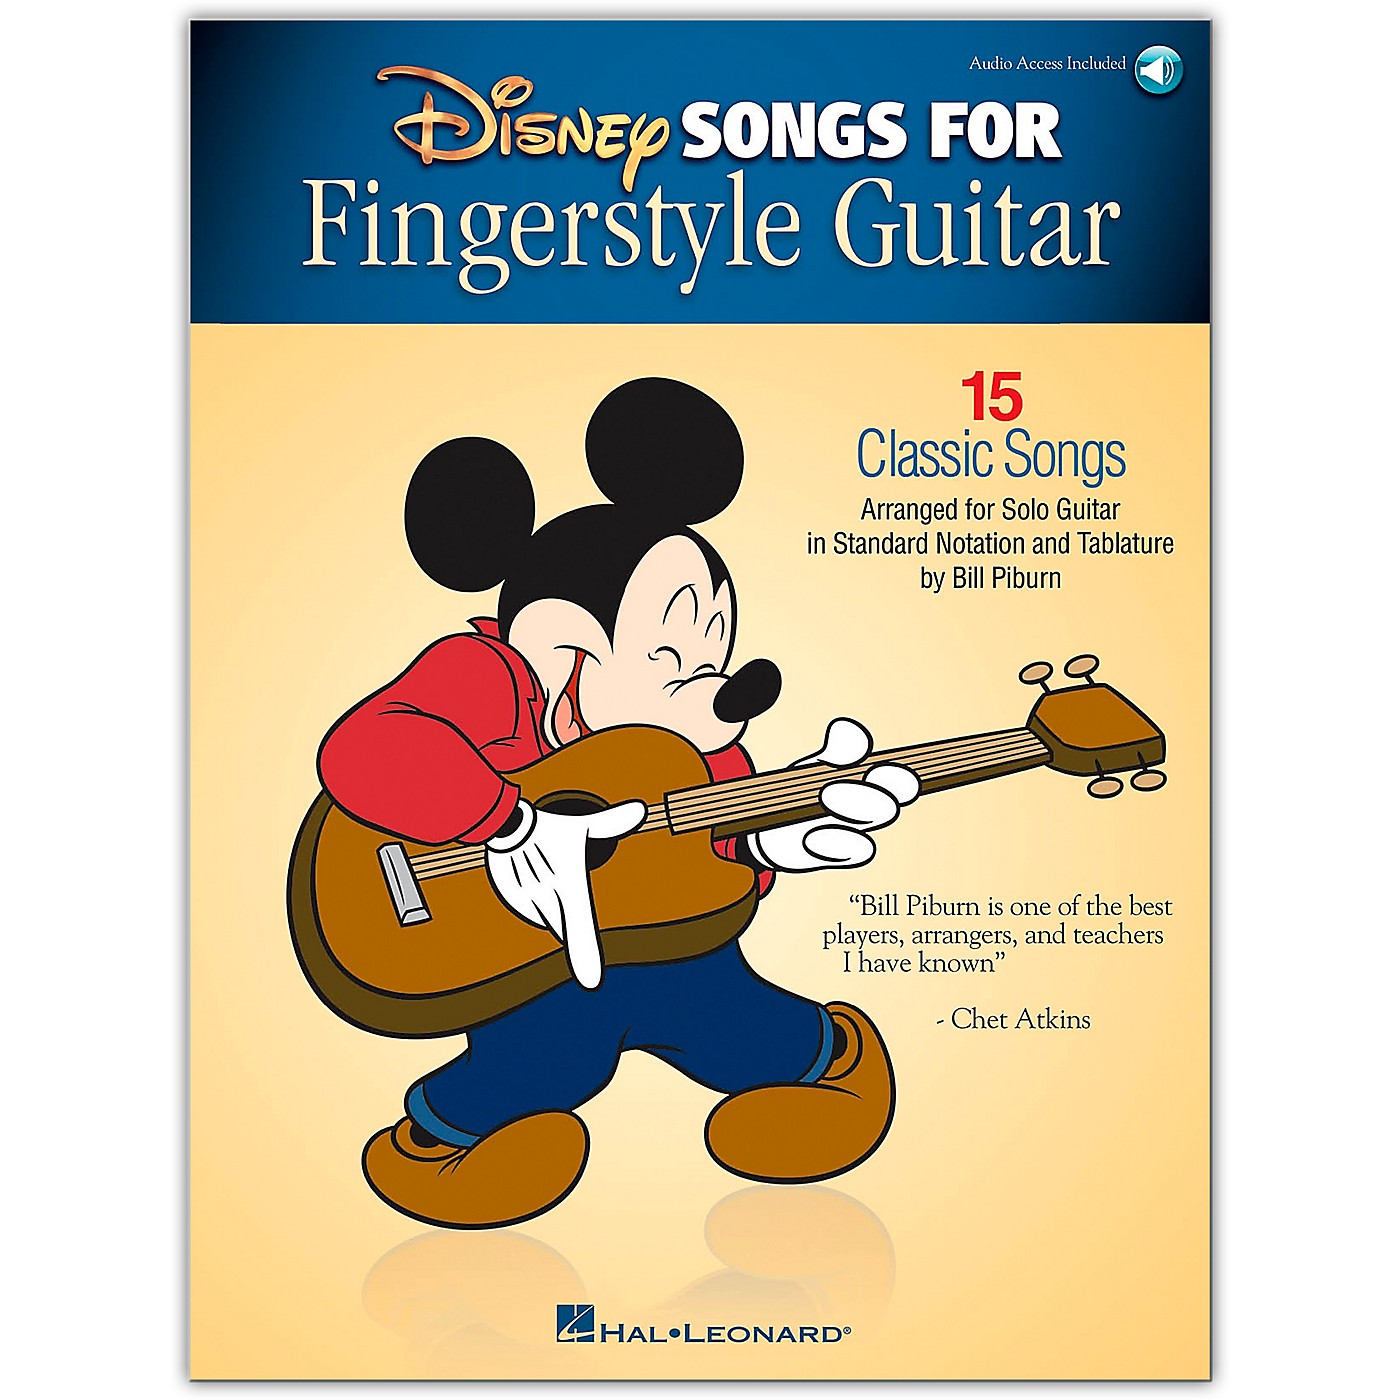 Hal Leonard Disney Songs for Fingerstyle Guitar Arranged for Guitar Solo Book/Audio Online thumbnail